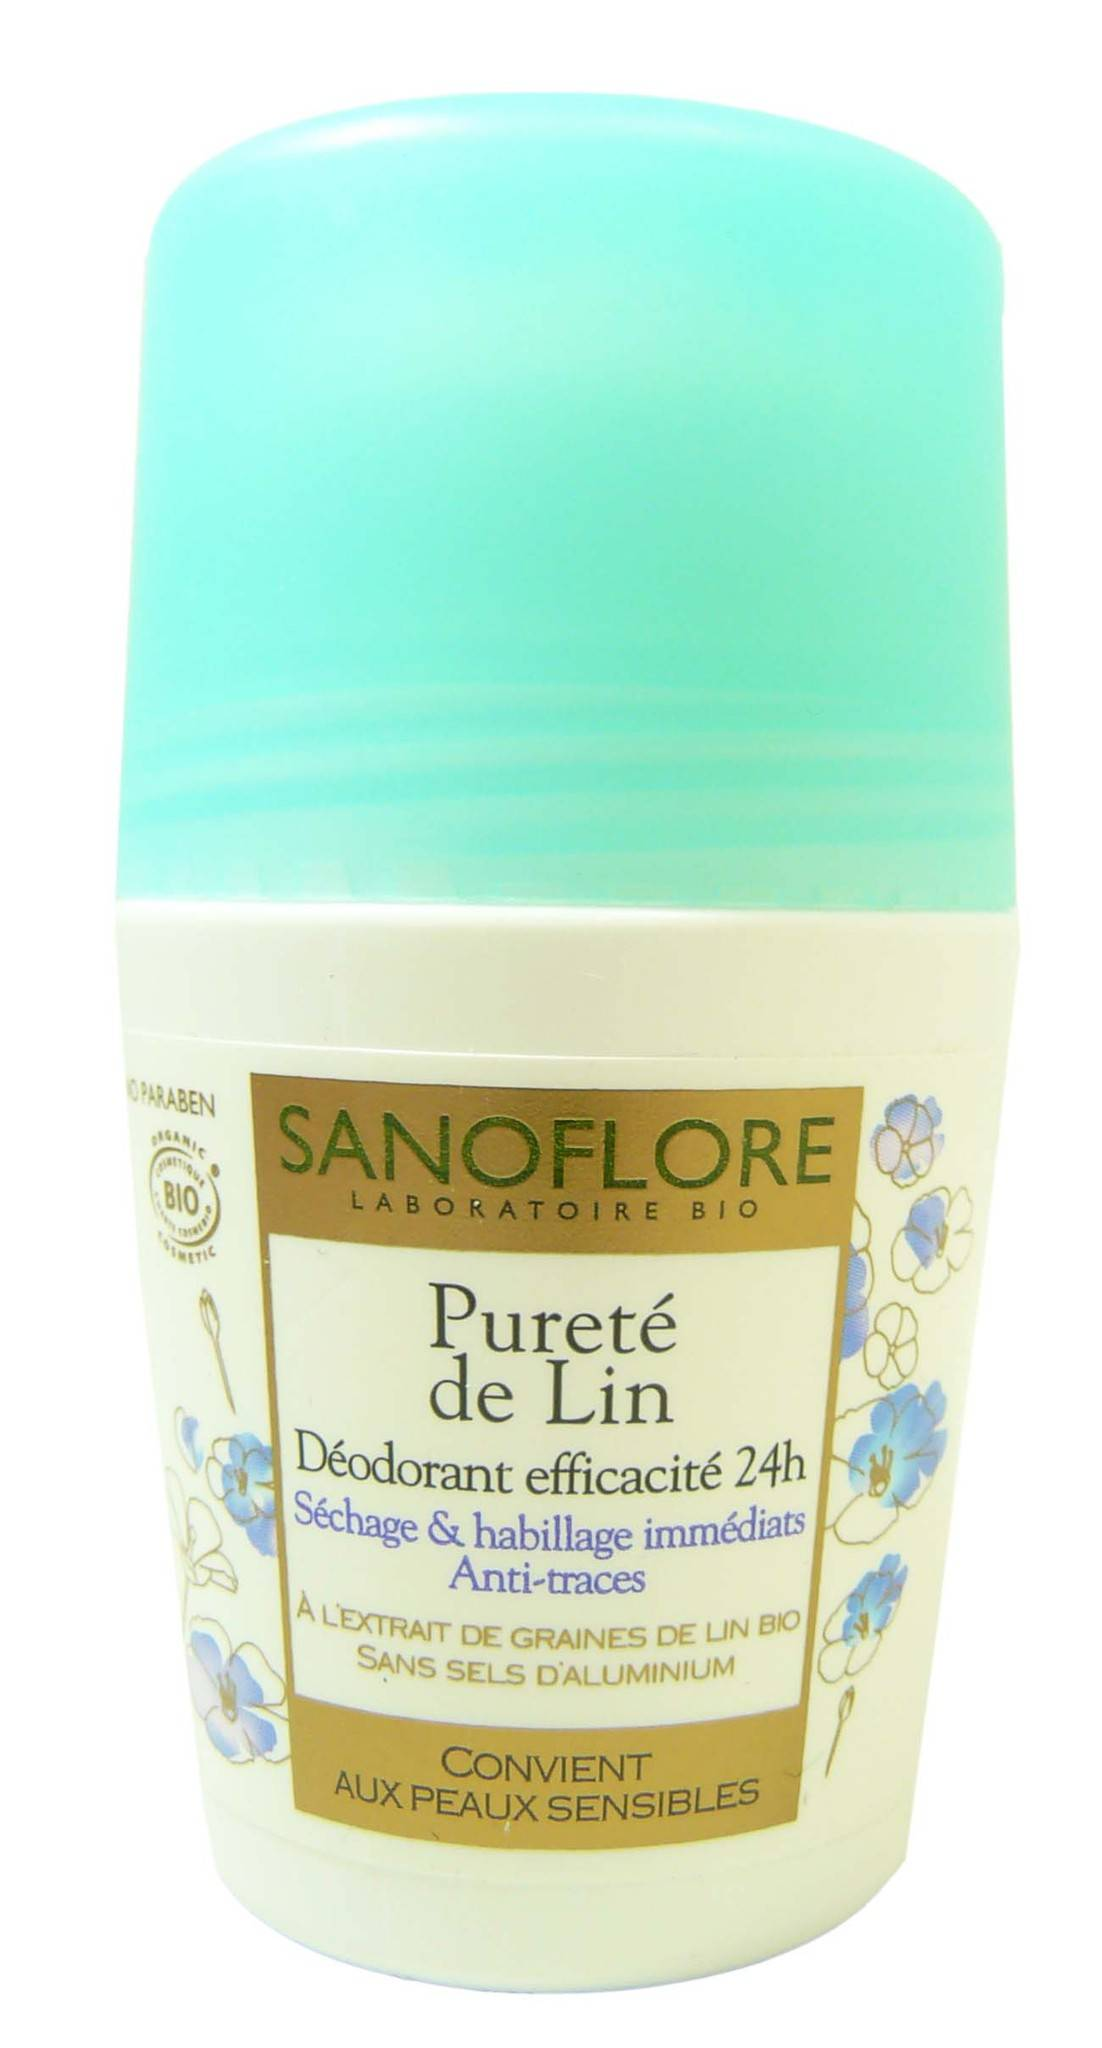 Sanoflore deo roll on 24h purete de lin 50ml